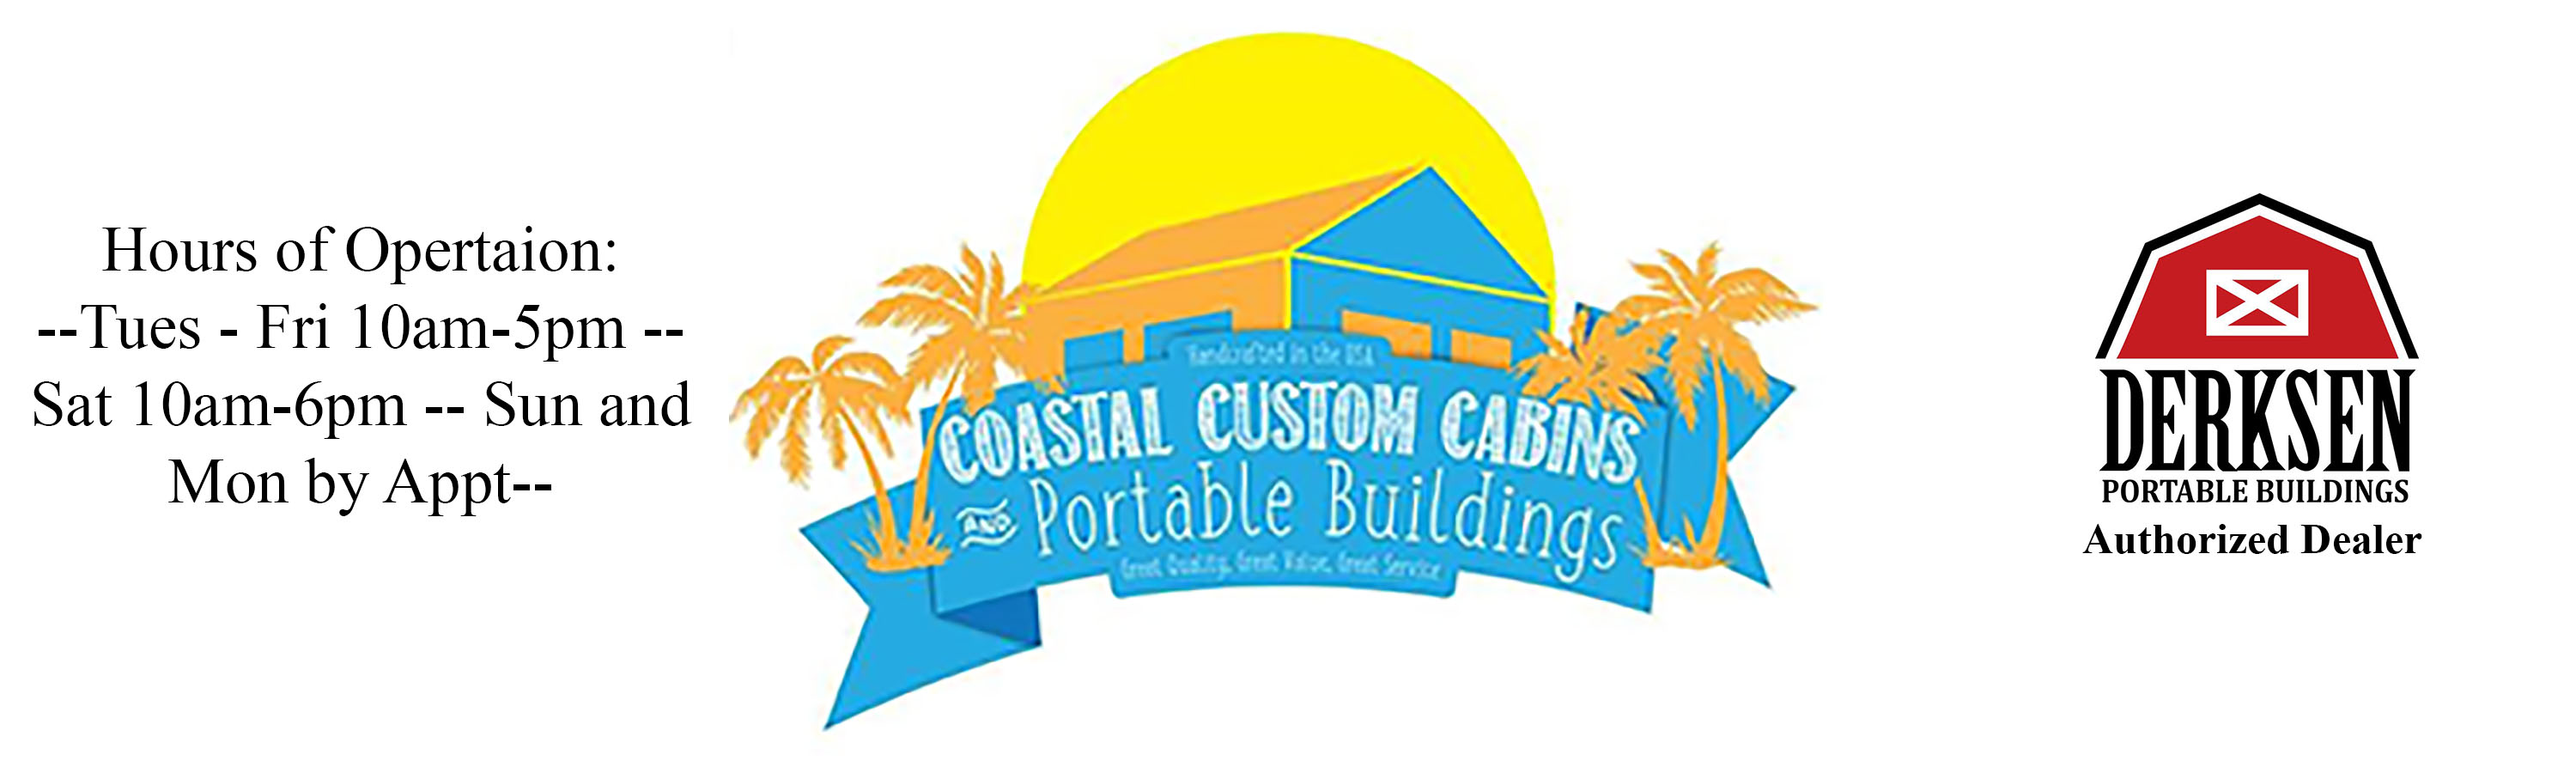 Coastal Custom Cabins and Portable Buildings